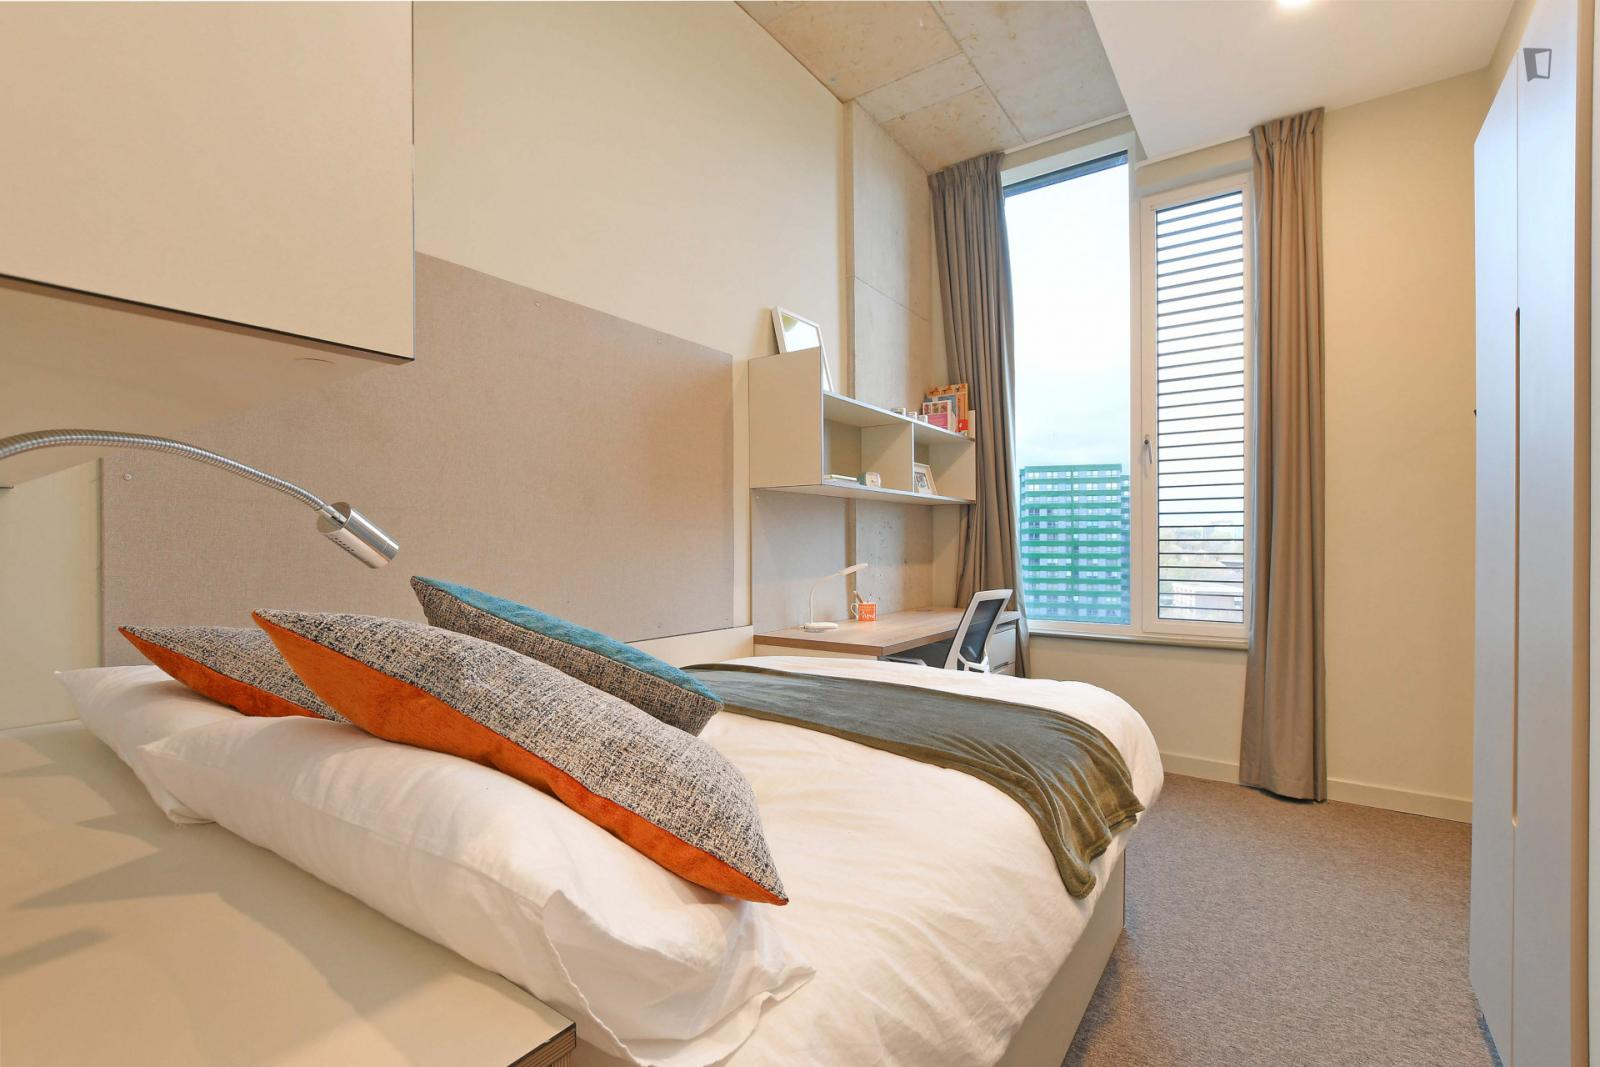 Ecclesall Road - 688USD / month